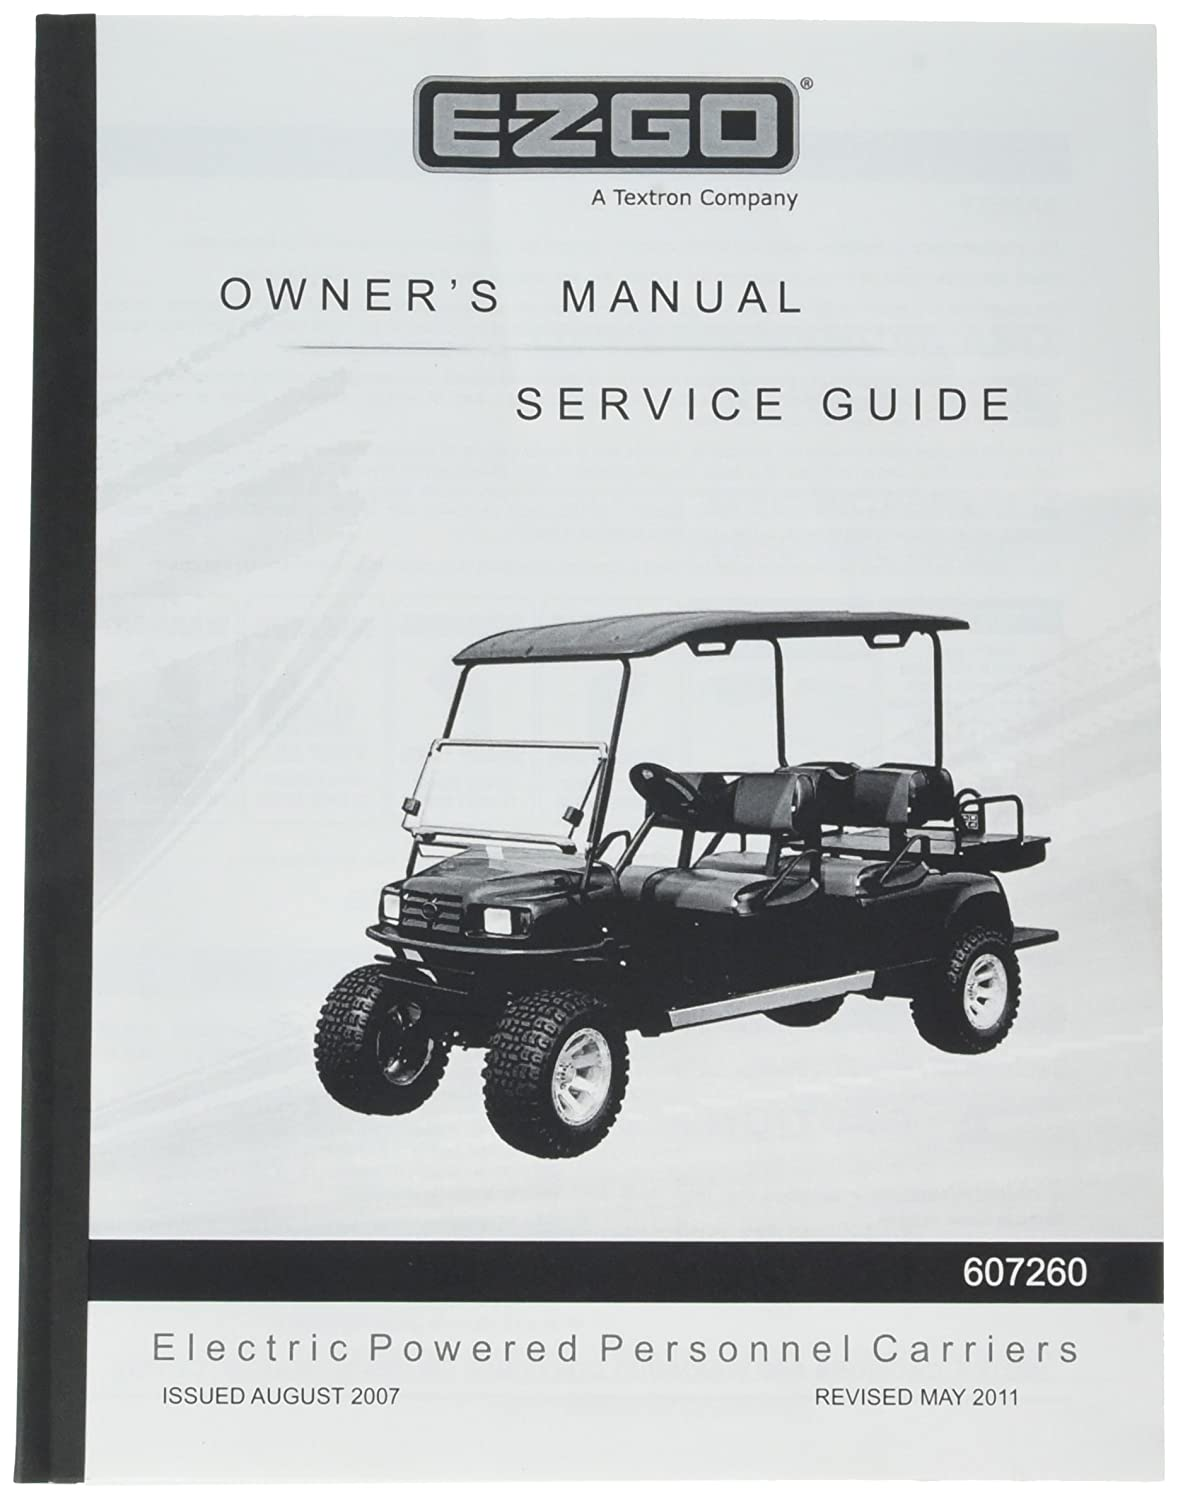 Amazon.com : EZGO 607260 2007 Owner's Manual and Service Guide for Electric  Personnel Carrier Turf Vehicles : Outdoor Decorative Fences : Garden &  Outdoor